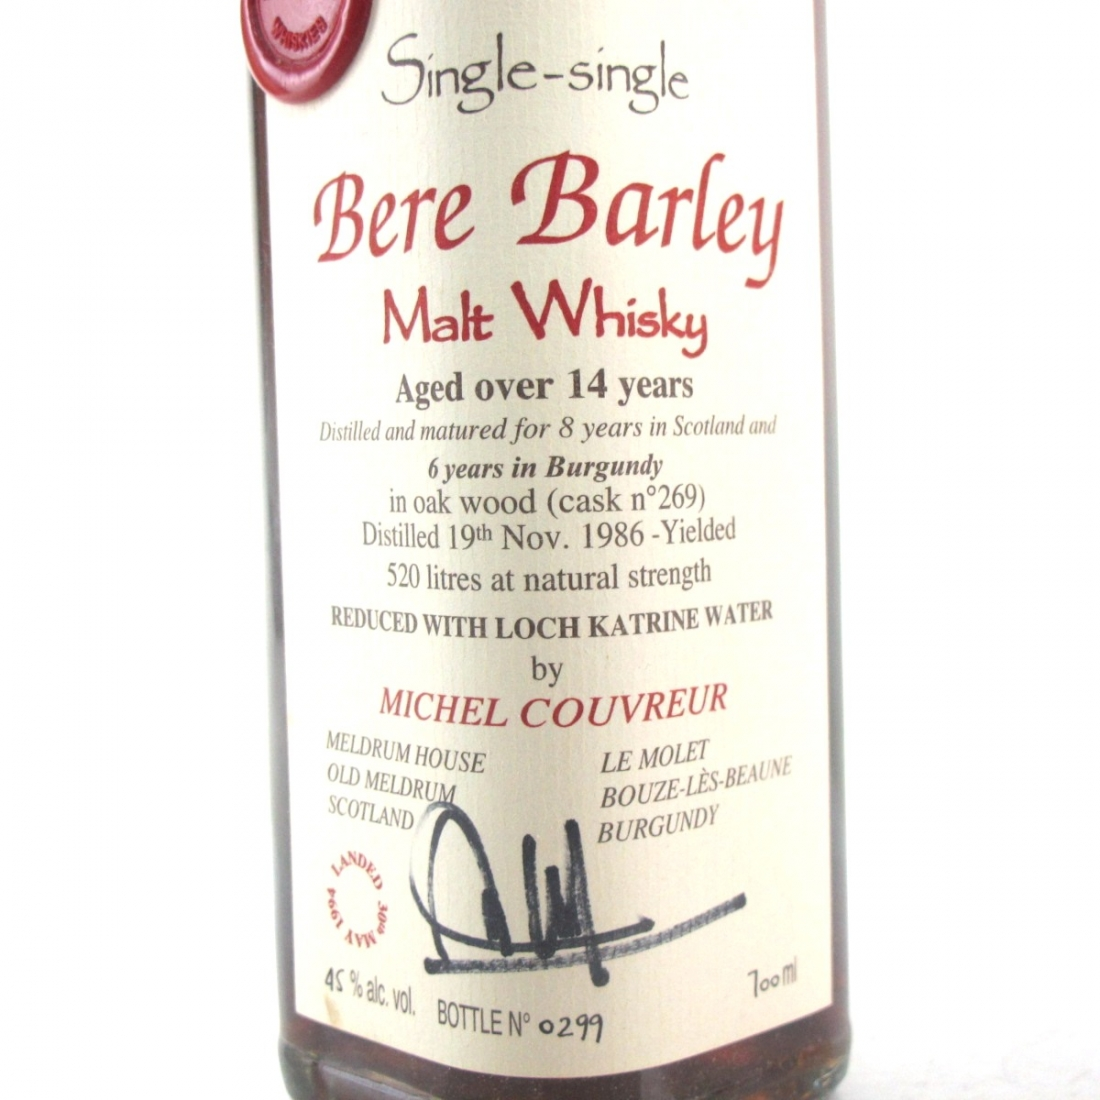 Michel Couvreur Bere Barley Aged Over 14 Years